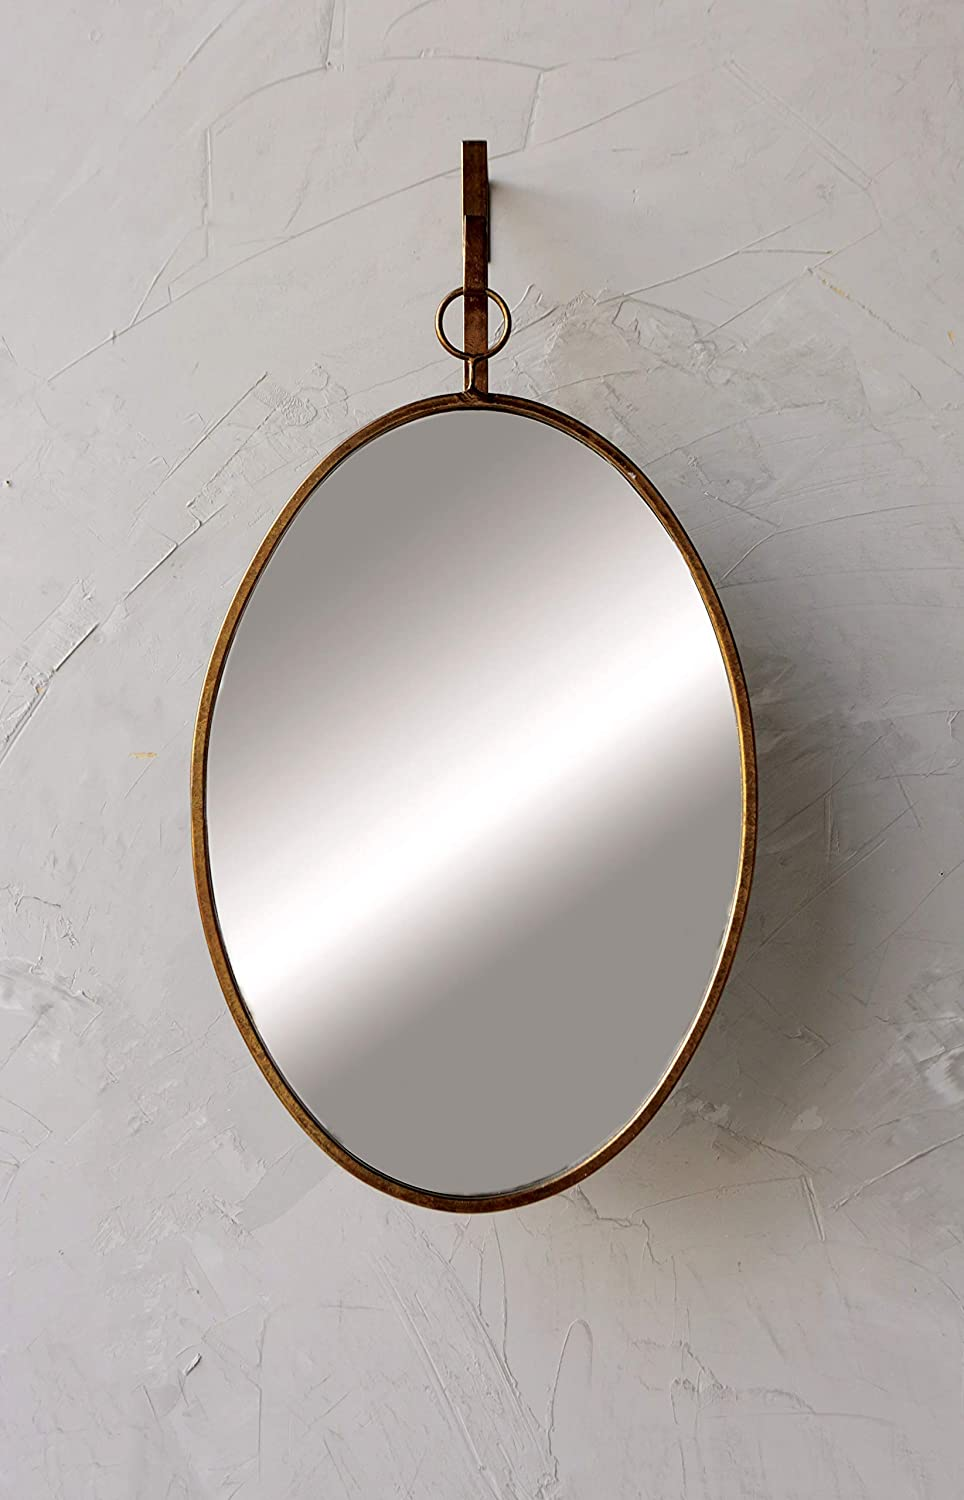 Creative Co-op Framed Oval Wall Mirror with Hanging Bracket